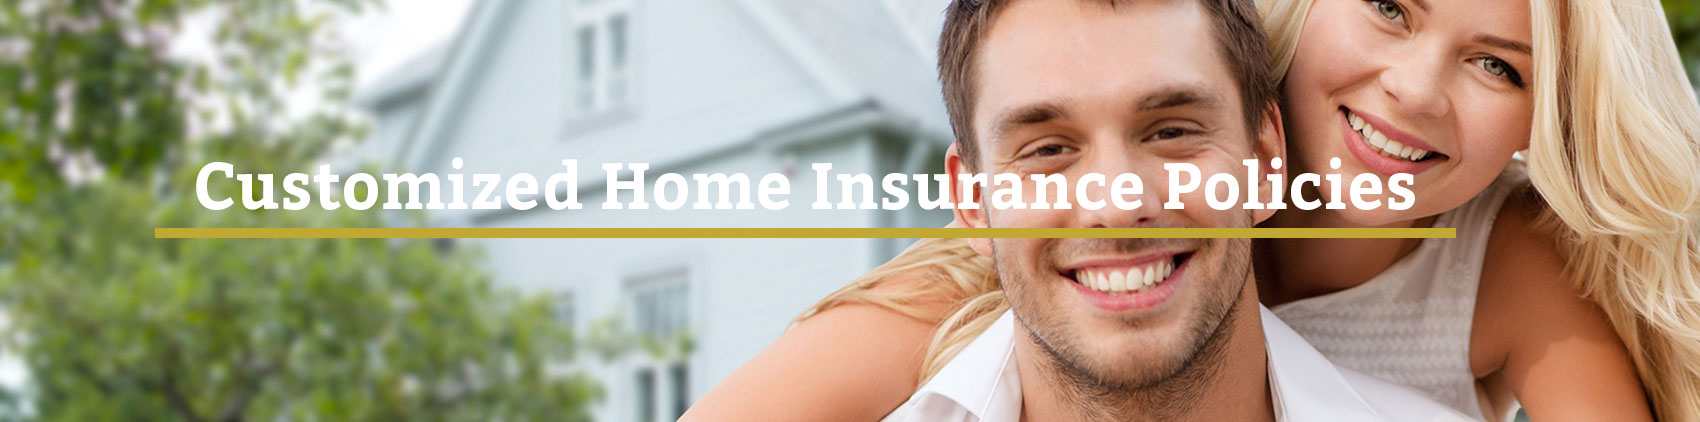 Customized Home Insurance Policies - Jeffery & Spence Slider.jpg